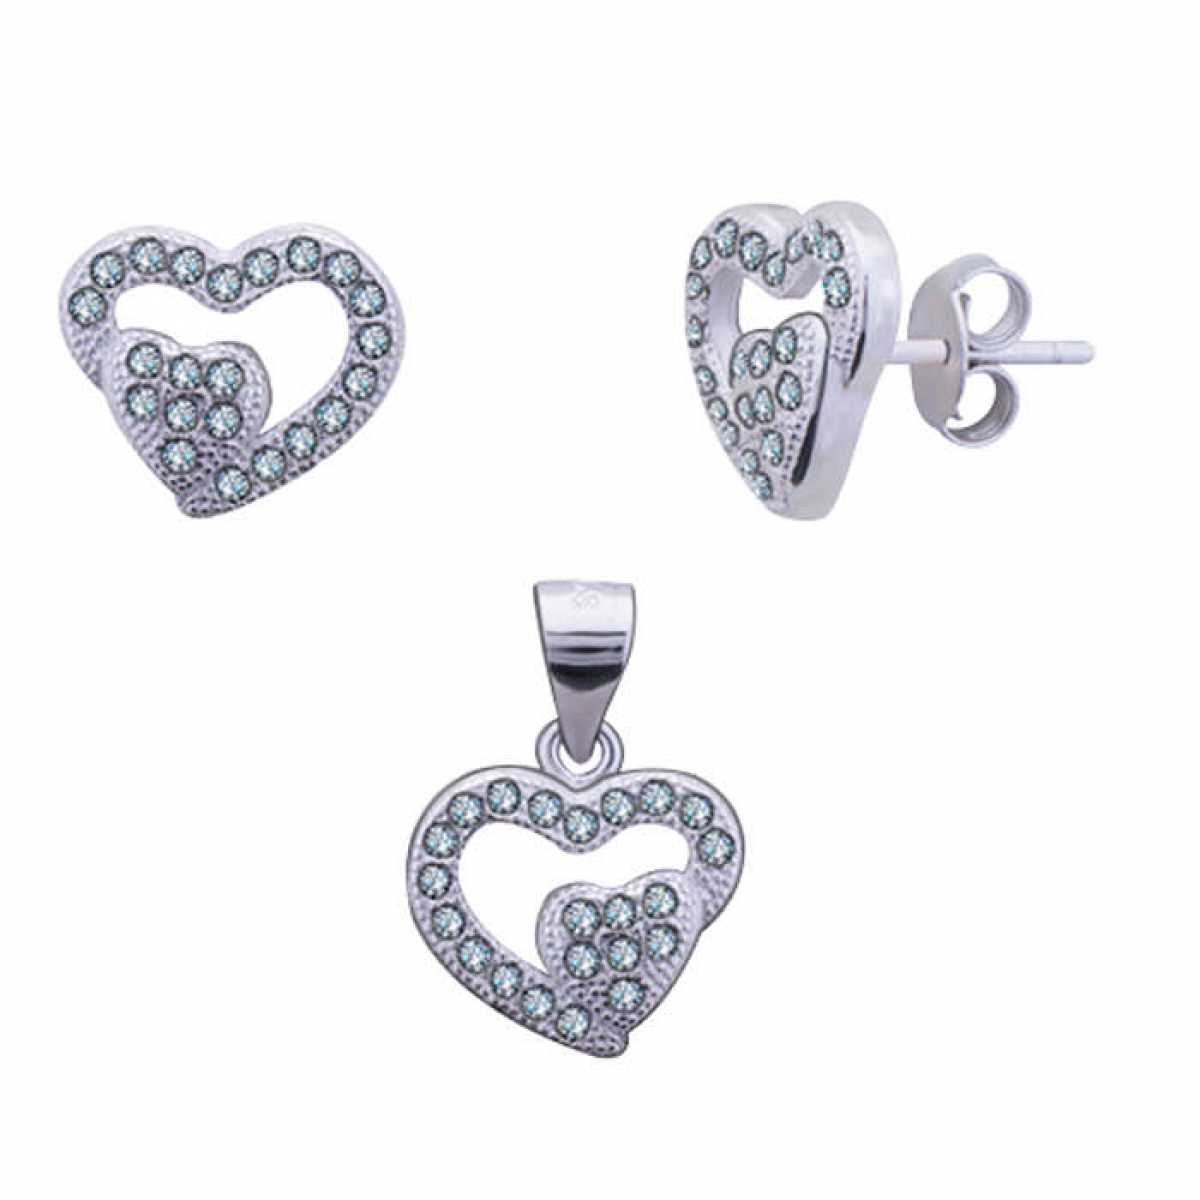 Small Heart Pendant Set